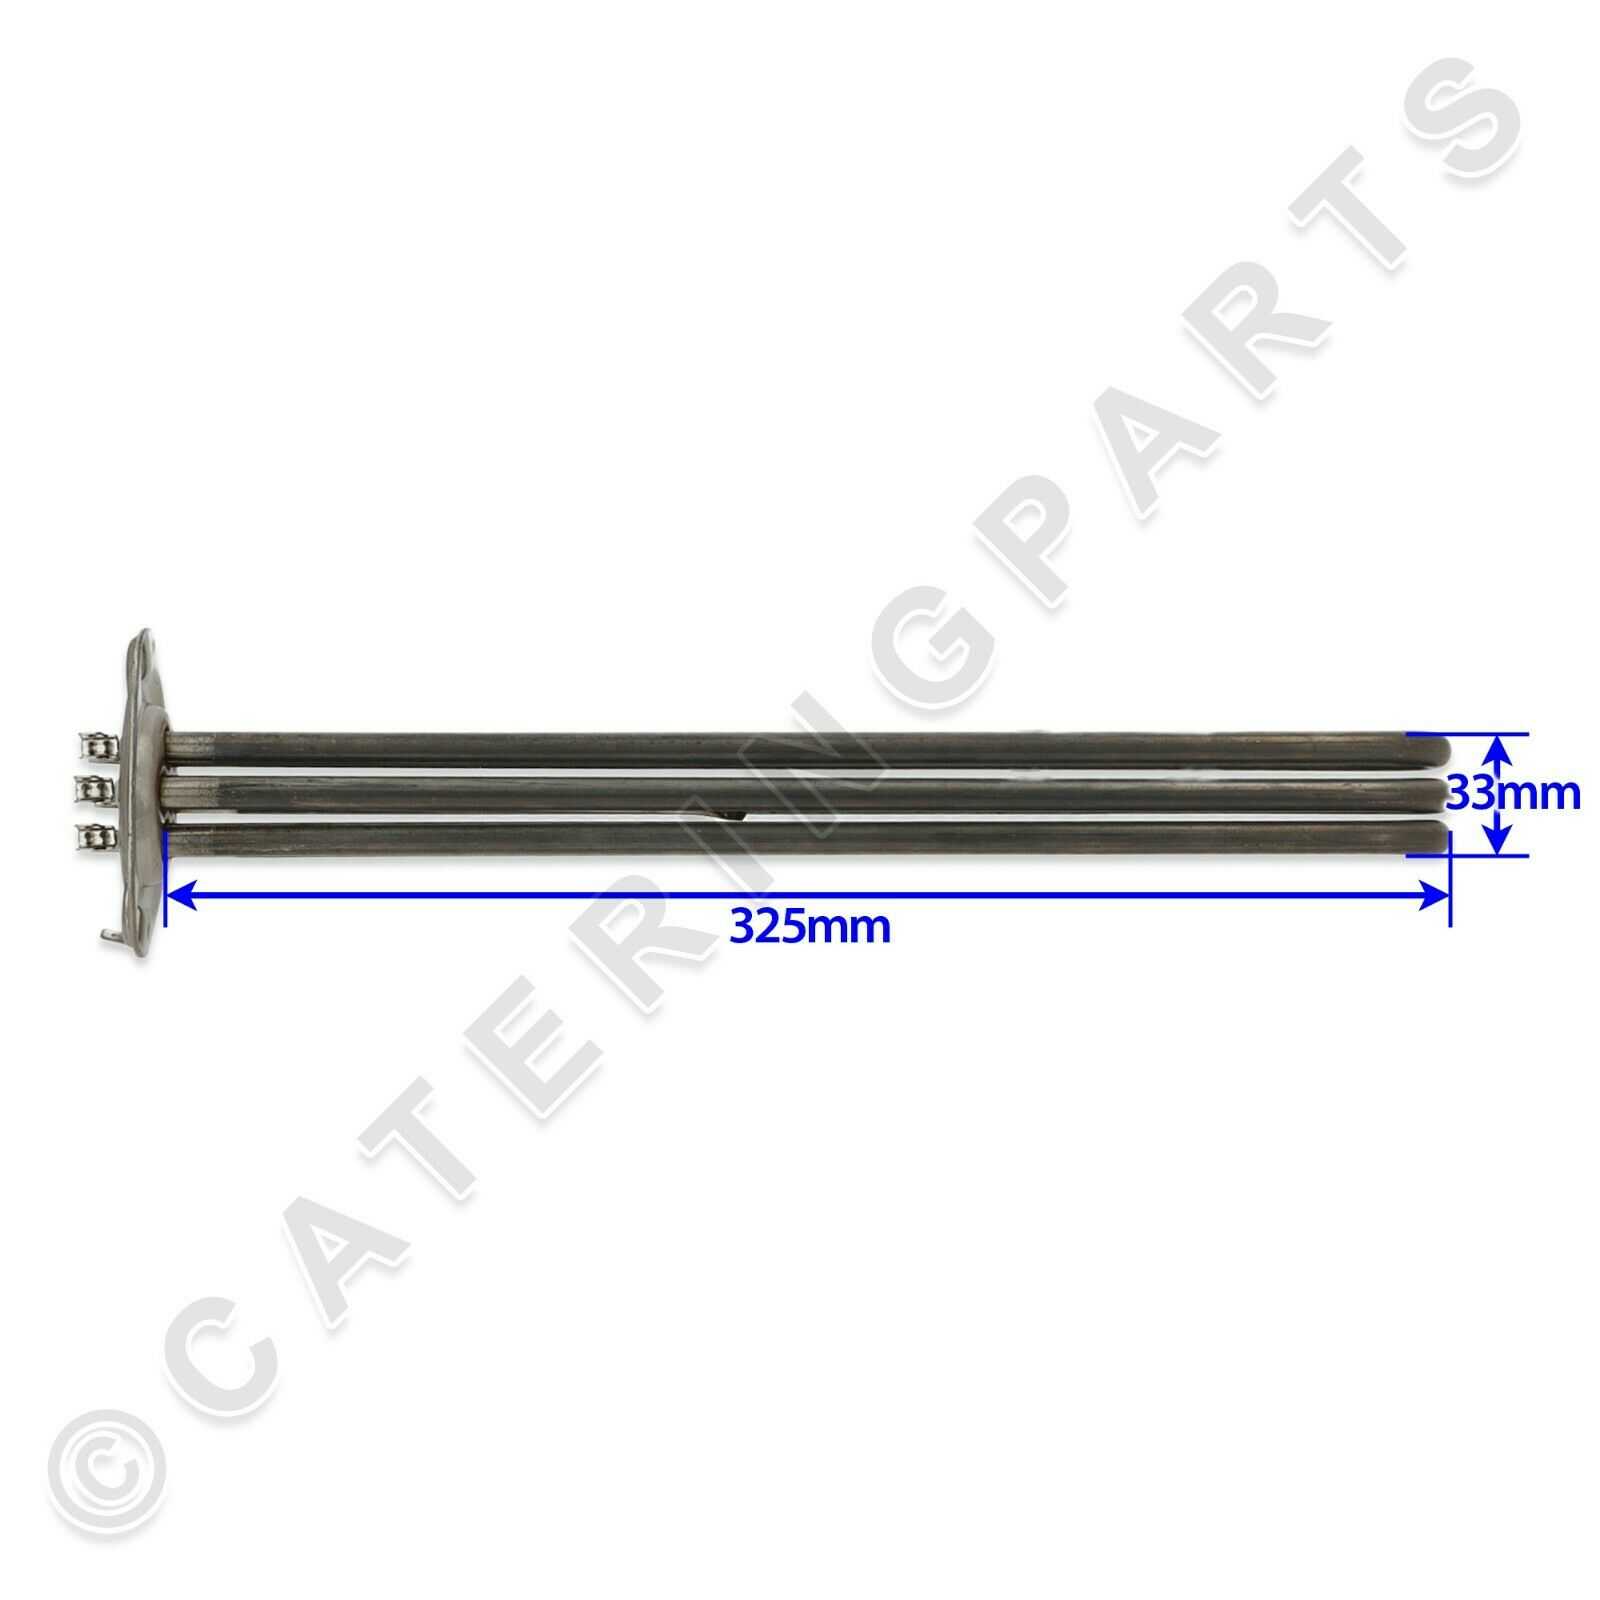 2.7KW RINSE TANK HEATING ELEMENT FOR LINEA BLANCA DISHWASHER GLASSWASHER A030022